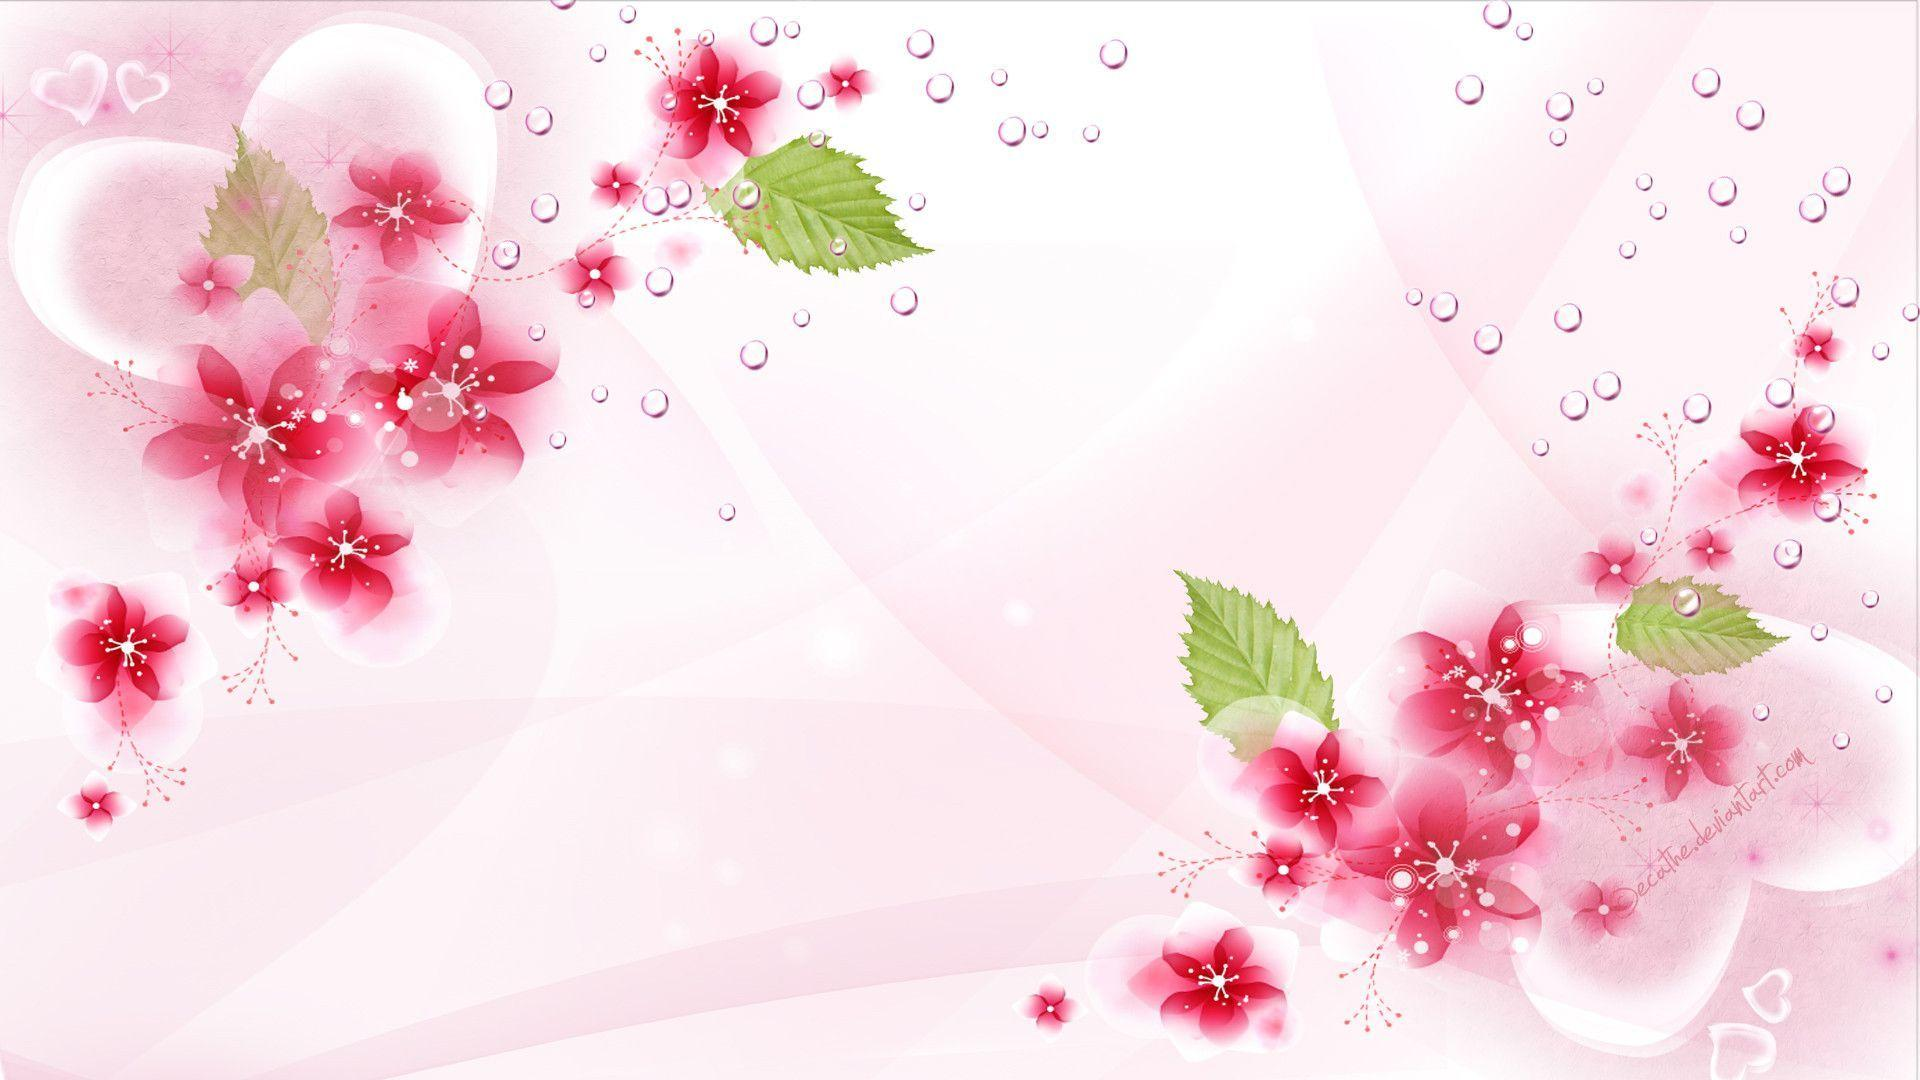 Rose Flowers Backgrounds - Wallpaper Cave